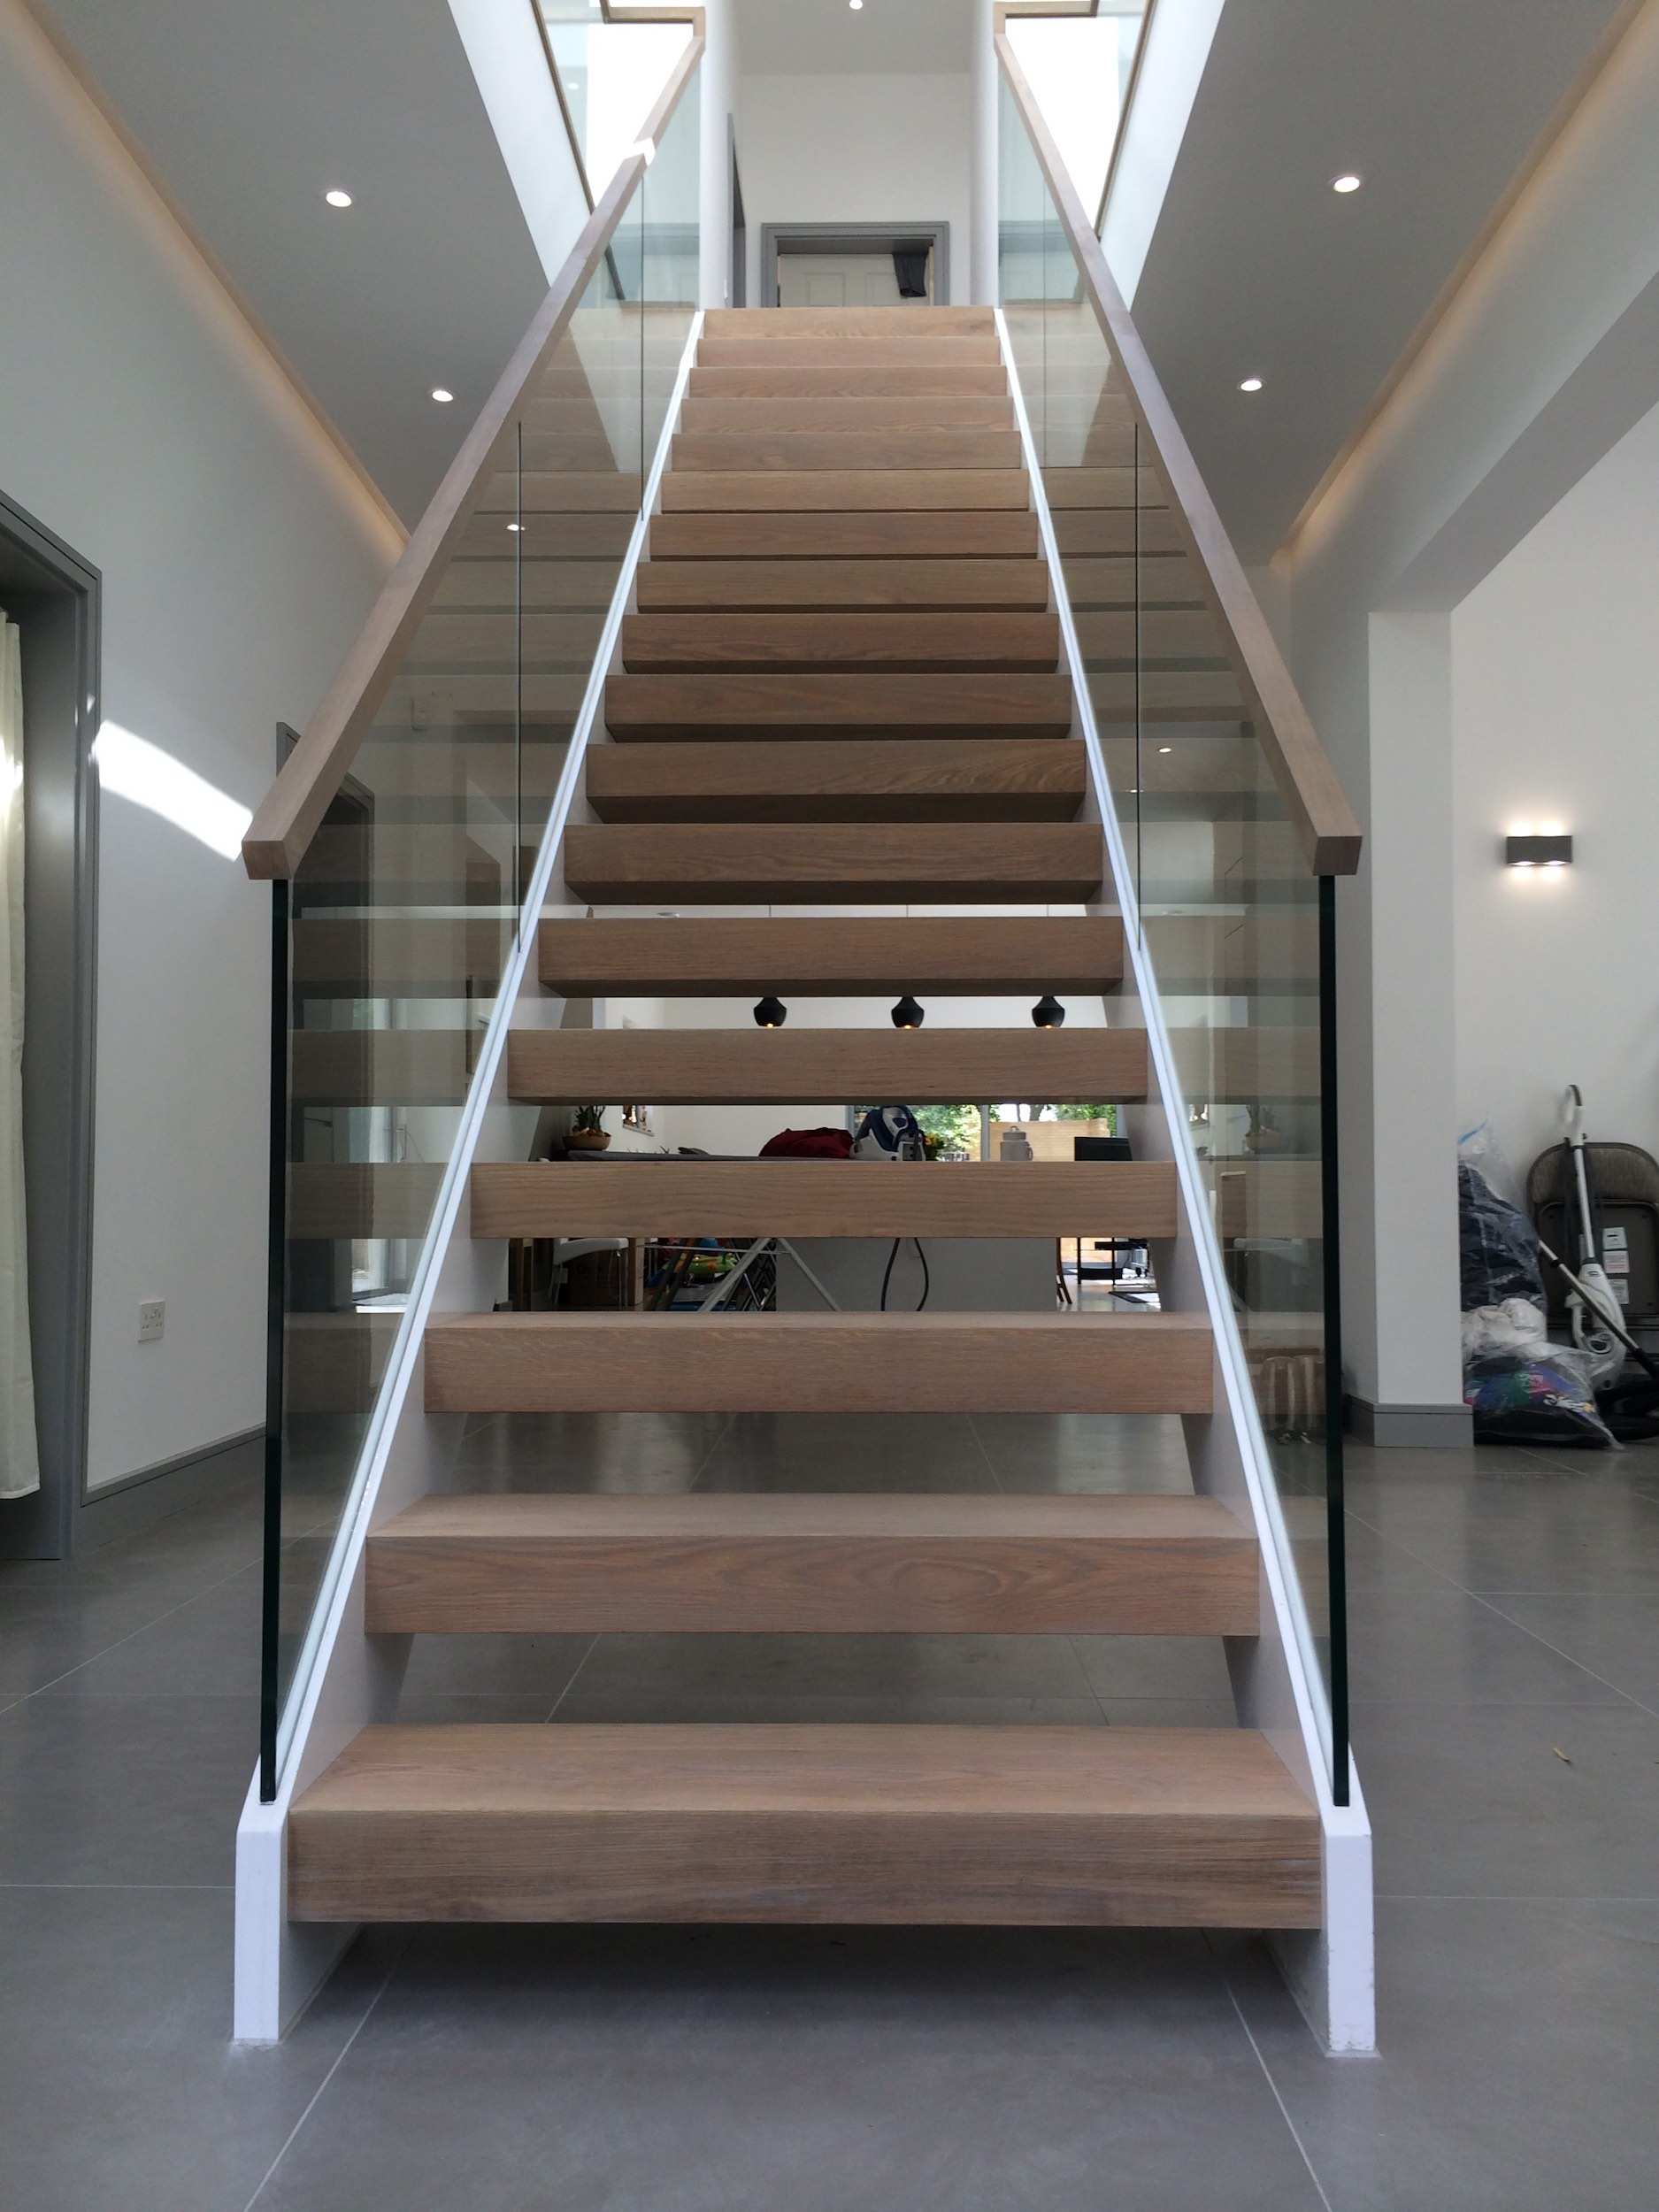 Symmetrical staircase with timber treads and glass balustrades